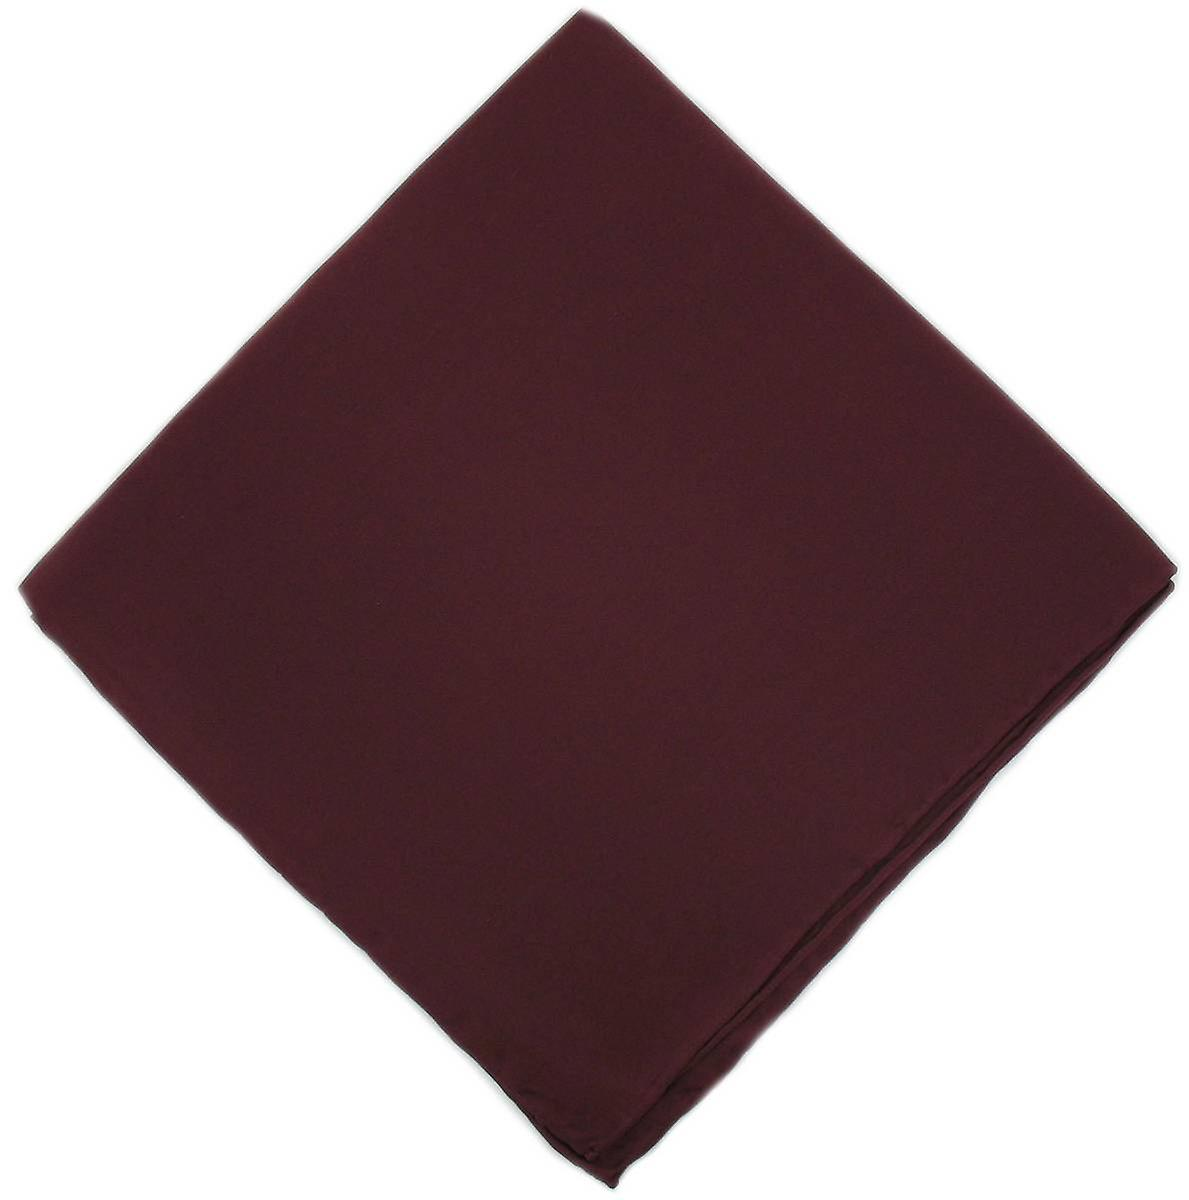 Michelsons of London Plain Silk Handkerchief - Wine Red